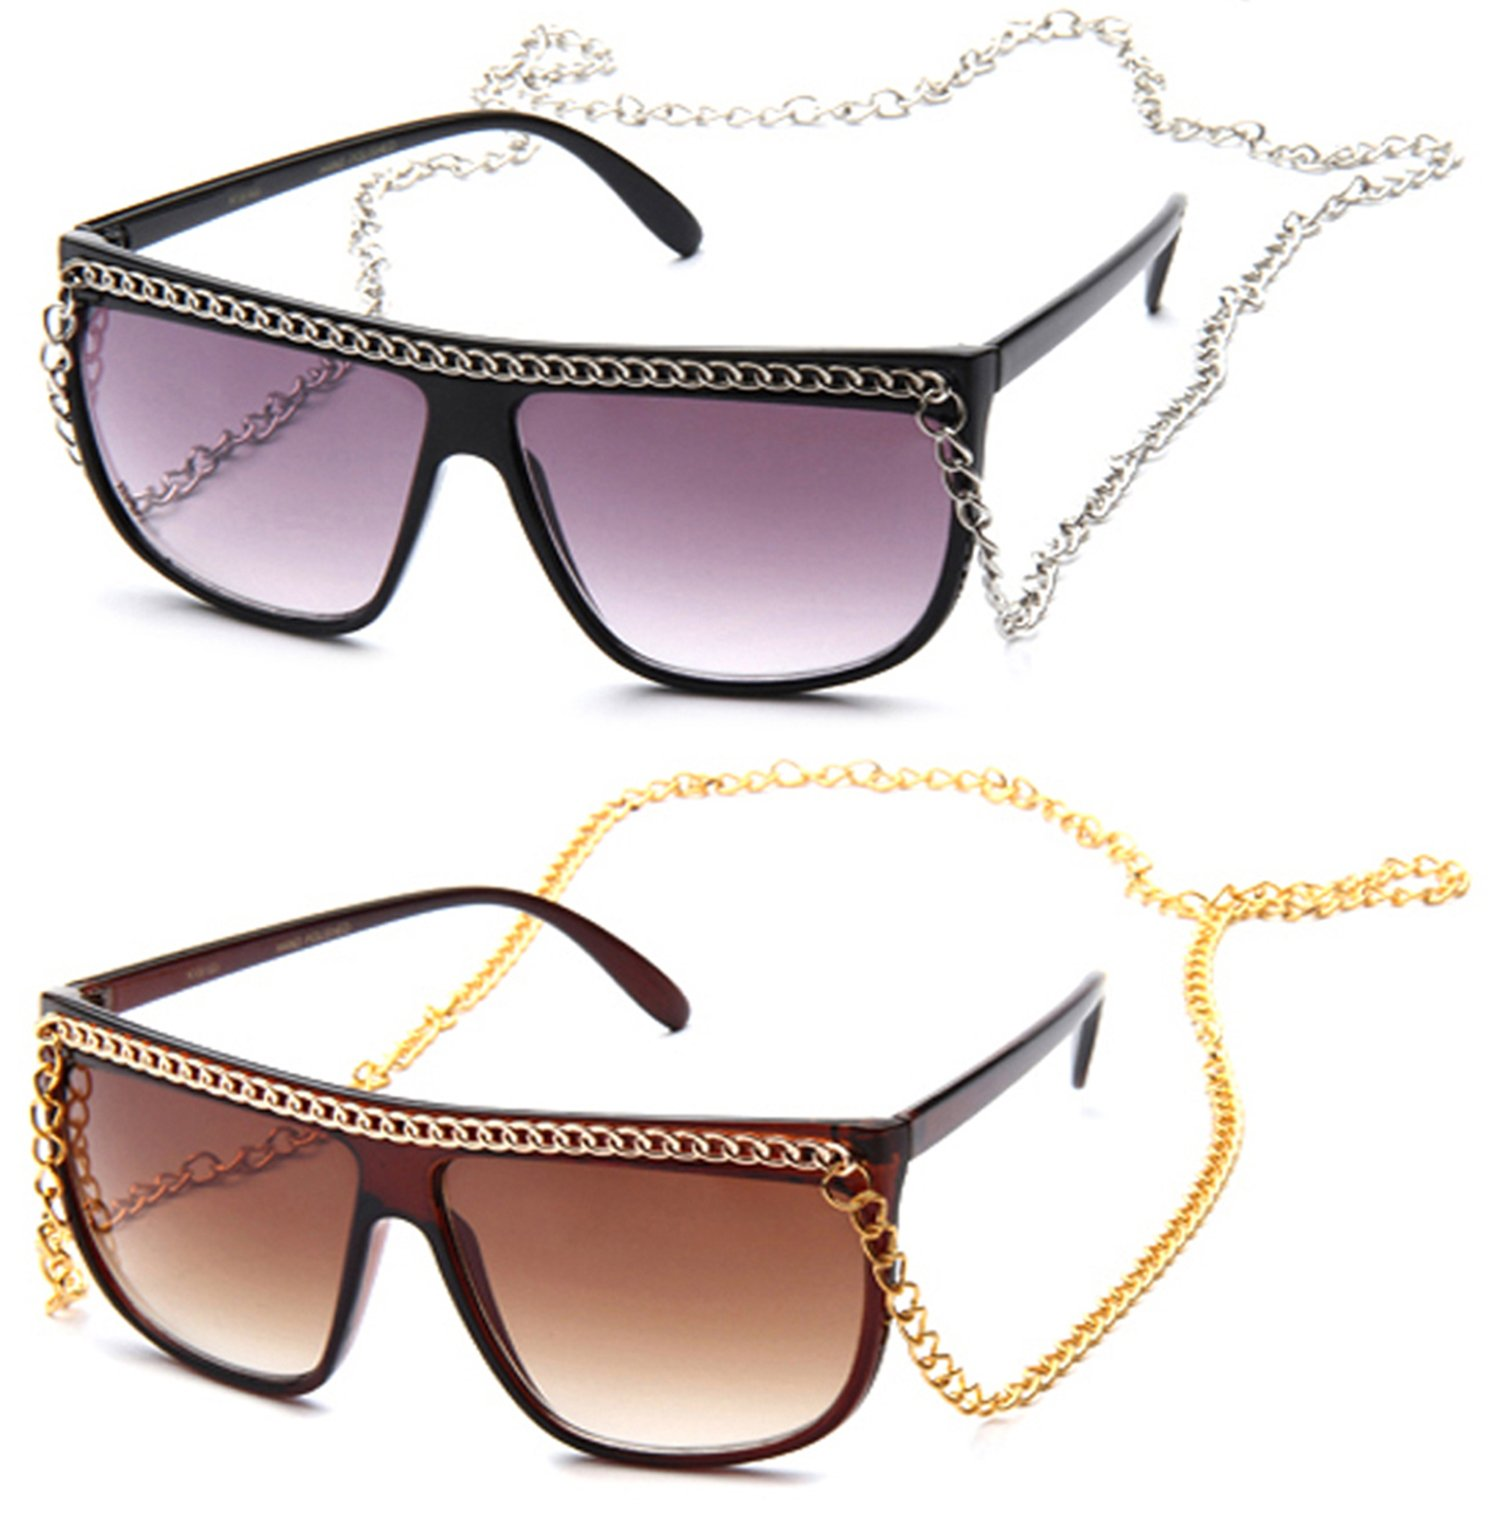 Newbee Fashion- Women Flat Top Oversized Retro Chain Sunglasses with Metal Chain on Top & Around Neck ( Dark & Neon Color to Choose from)